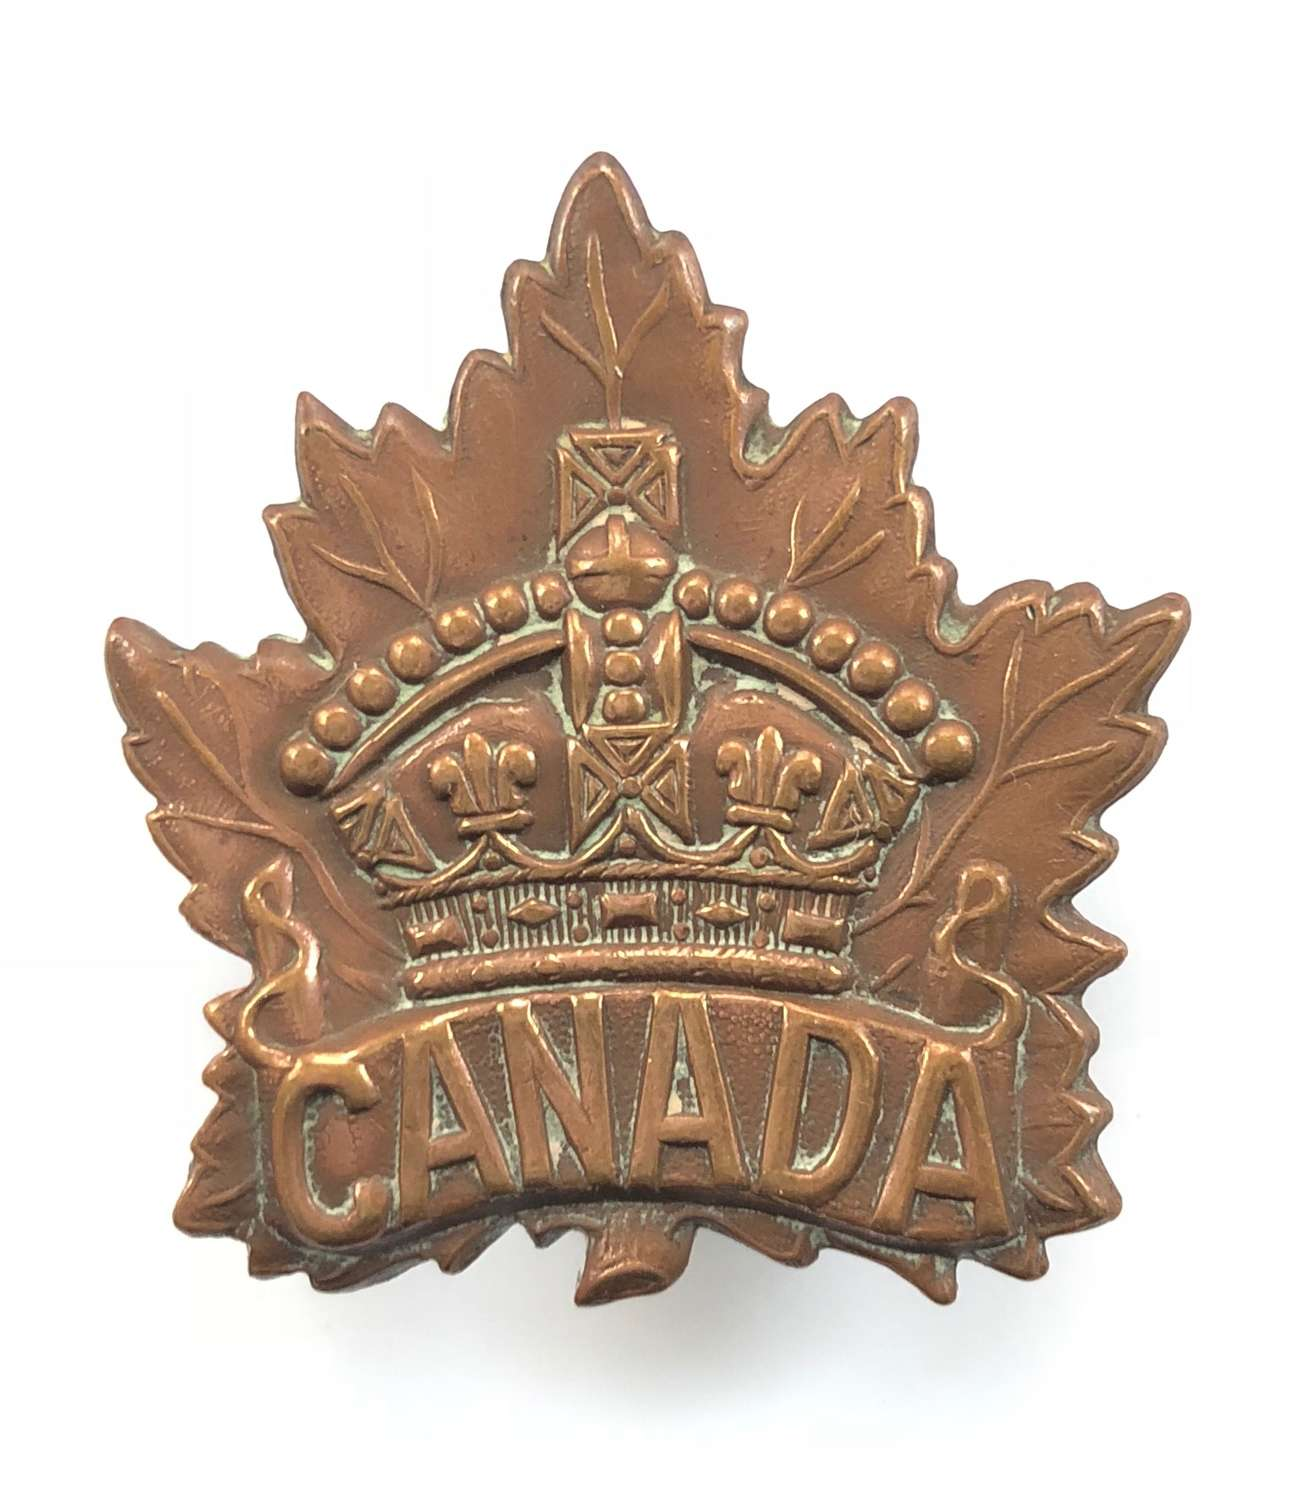 WW1 1915 Canadian Forces Cap Badge by Birks.